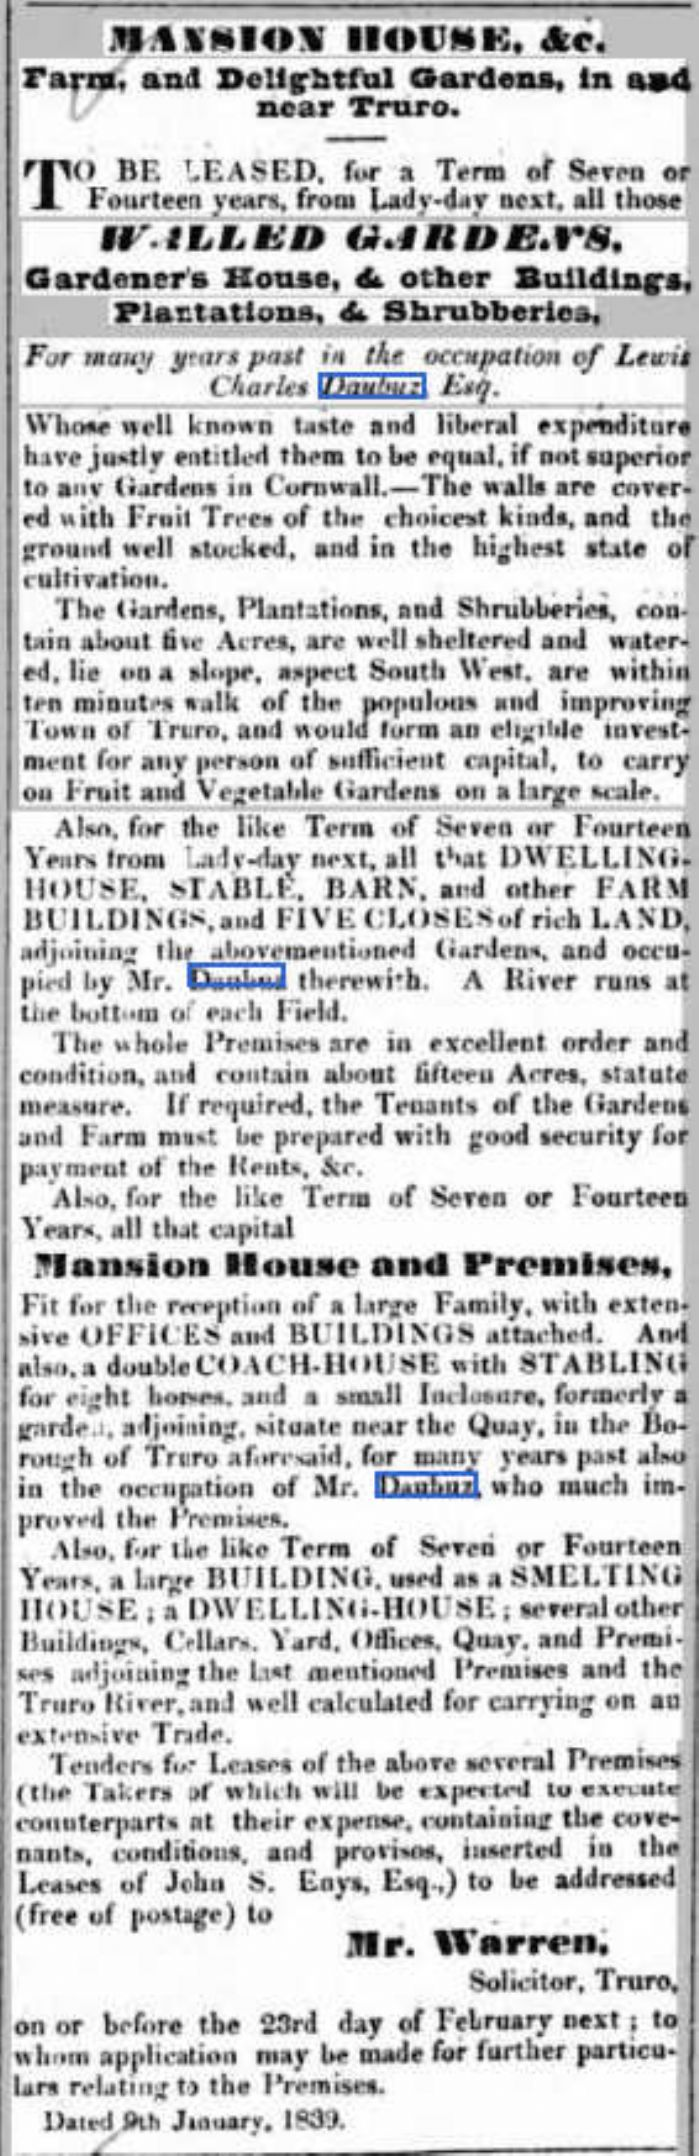 The Daubuz property offered for lease in the Royal Cornwall Gazette (Morrab Library)